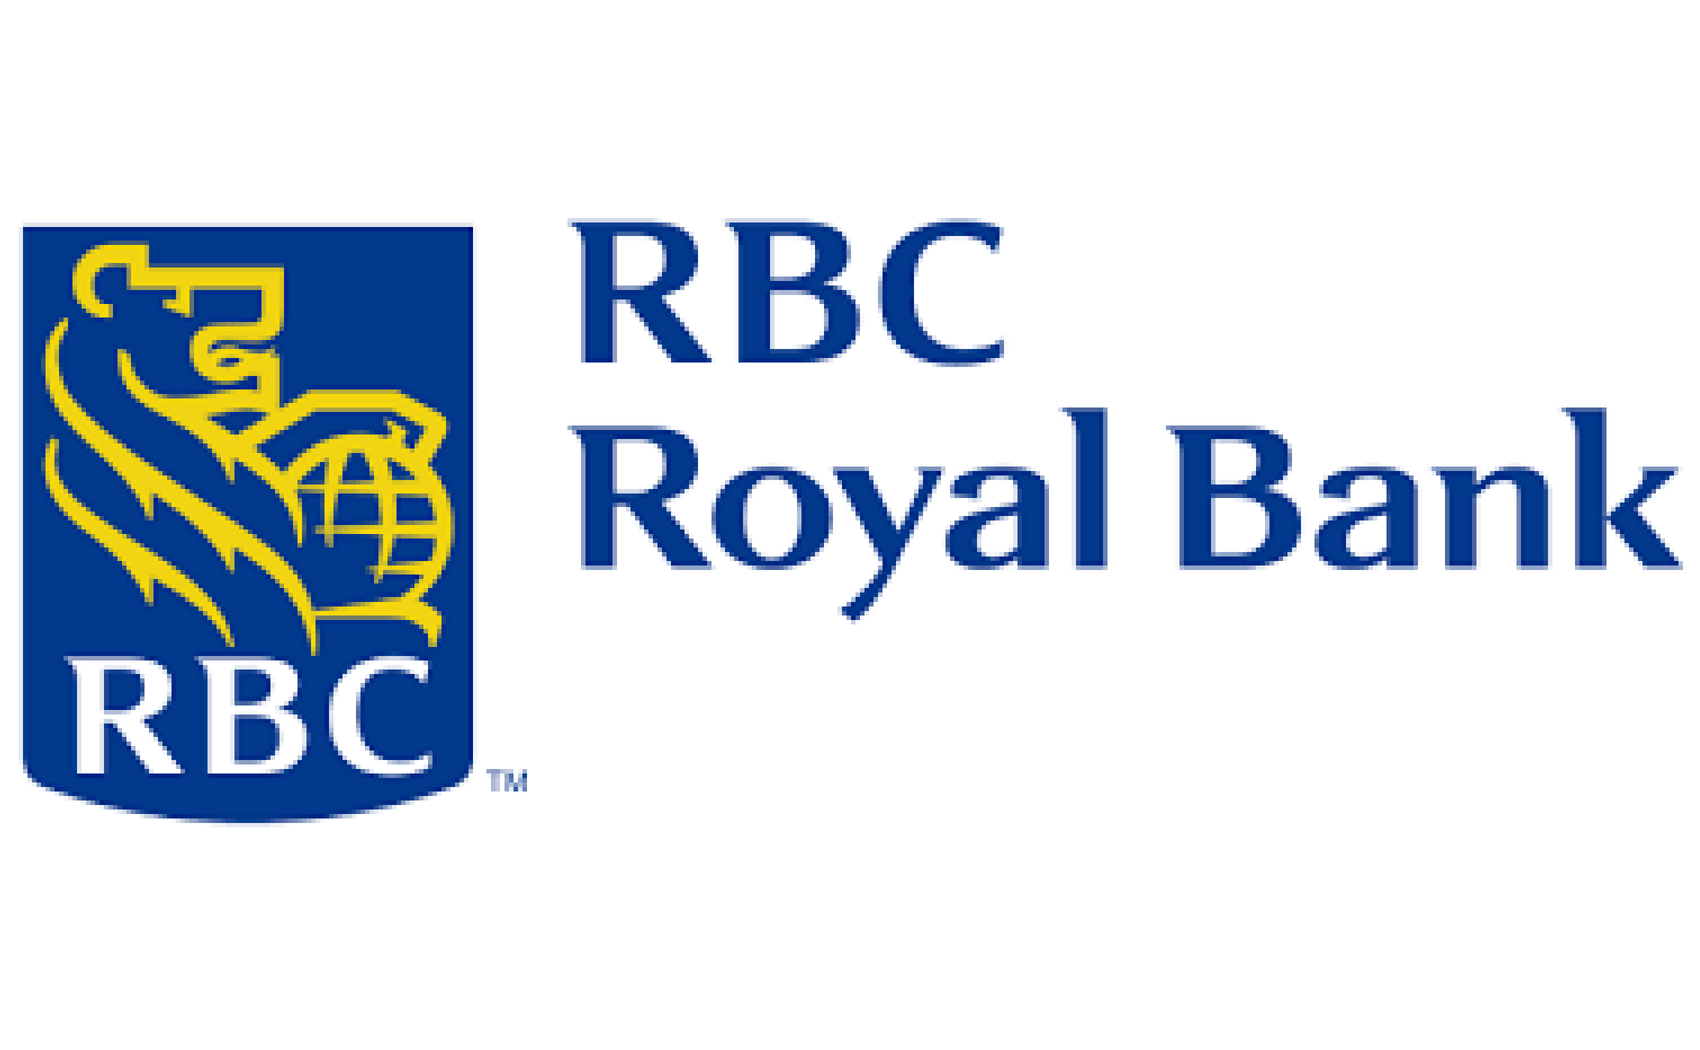 Less than 15 percent of RBC clients use over-the-counter transactions